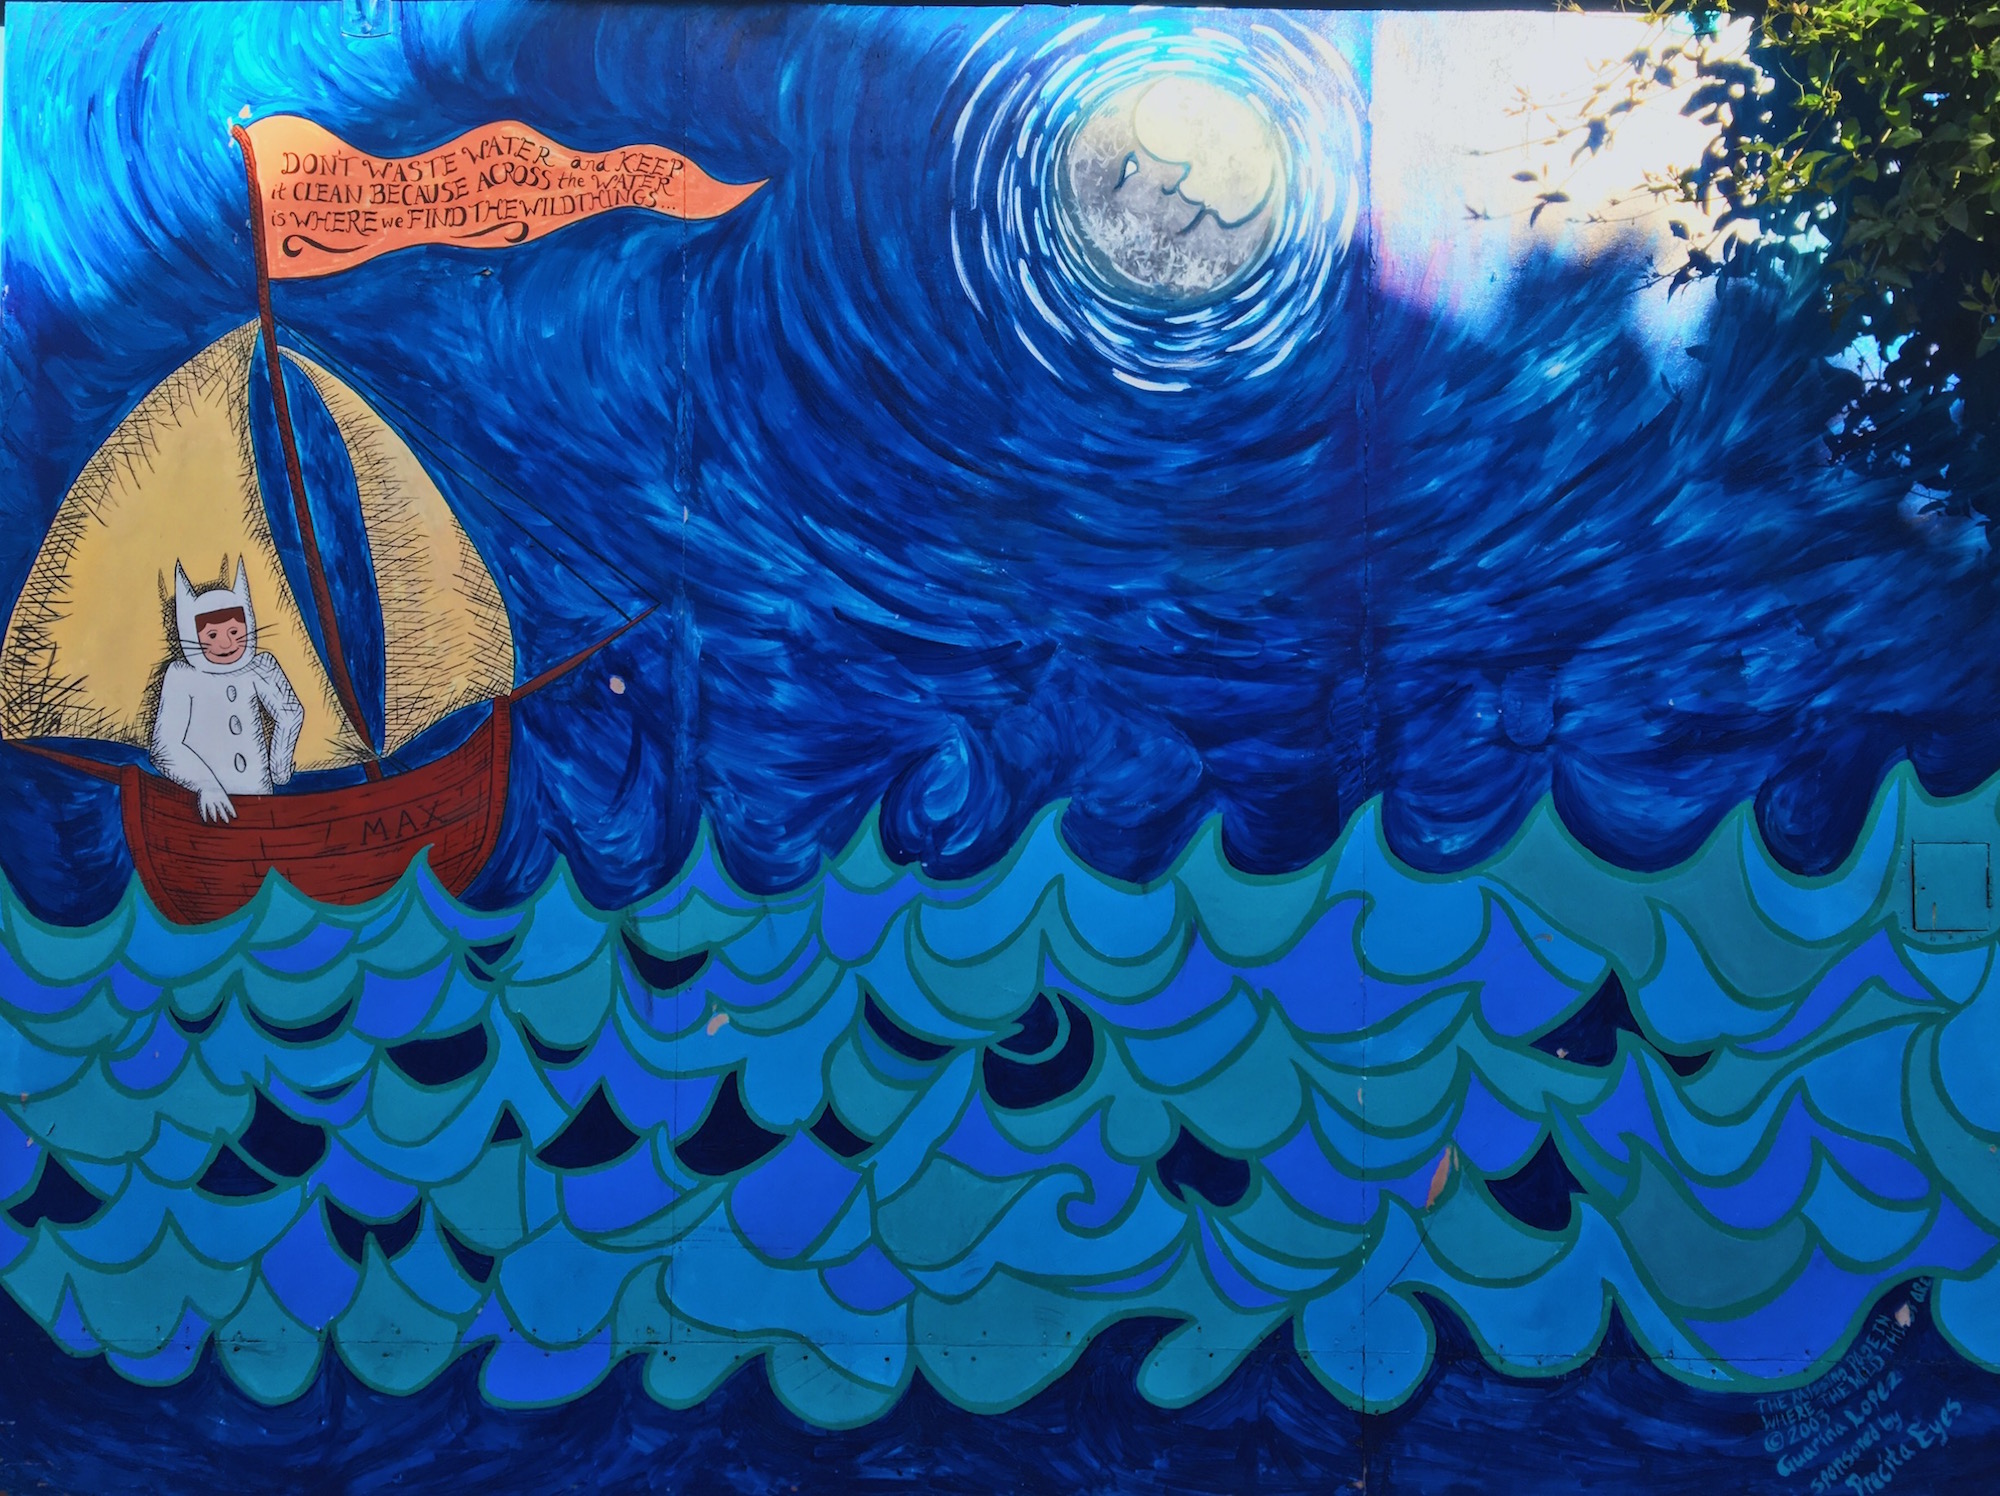 Balmy Alley - Murales nel quartiere Mission di San Francisco - The Missing Page from Where the Wild Things Are (2003) - Guarina Lopez